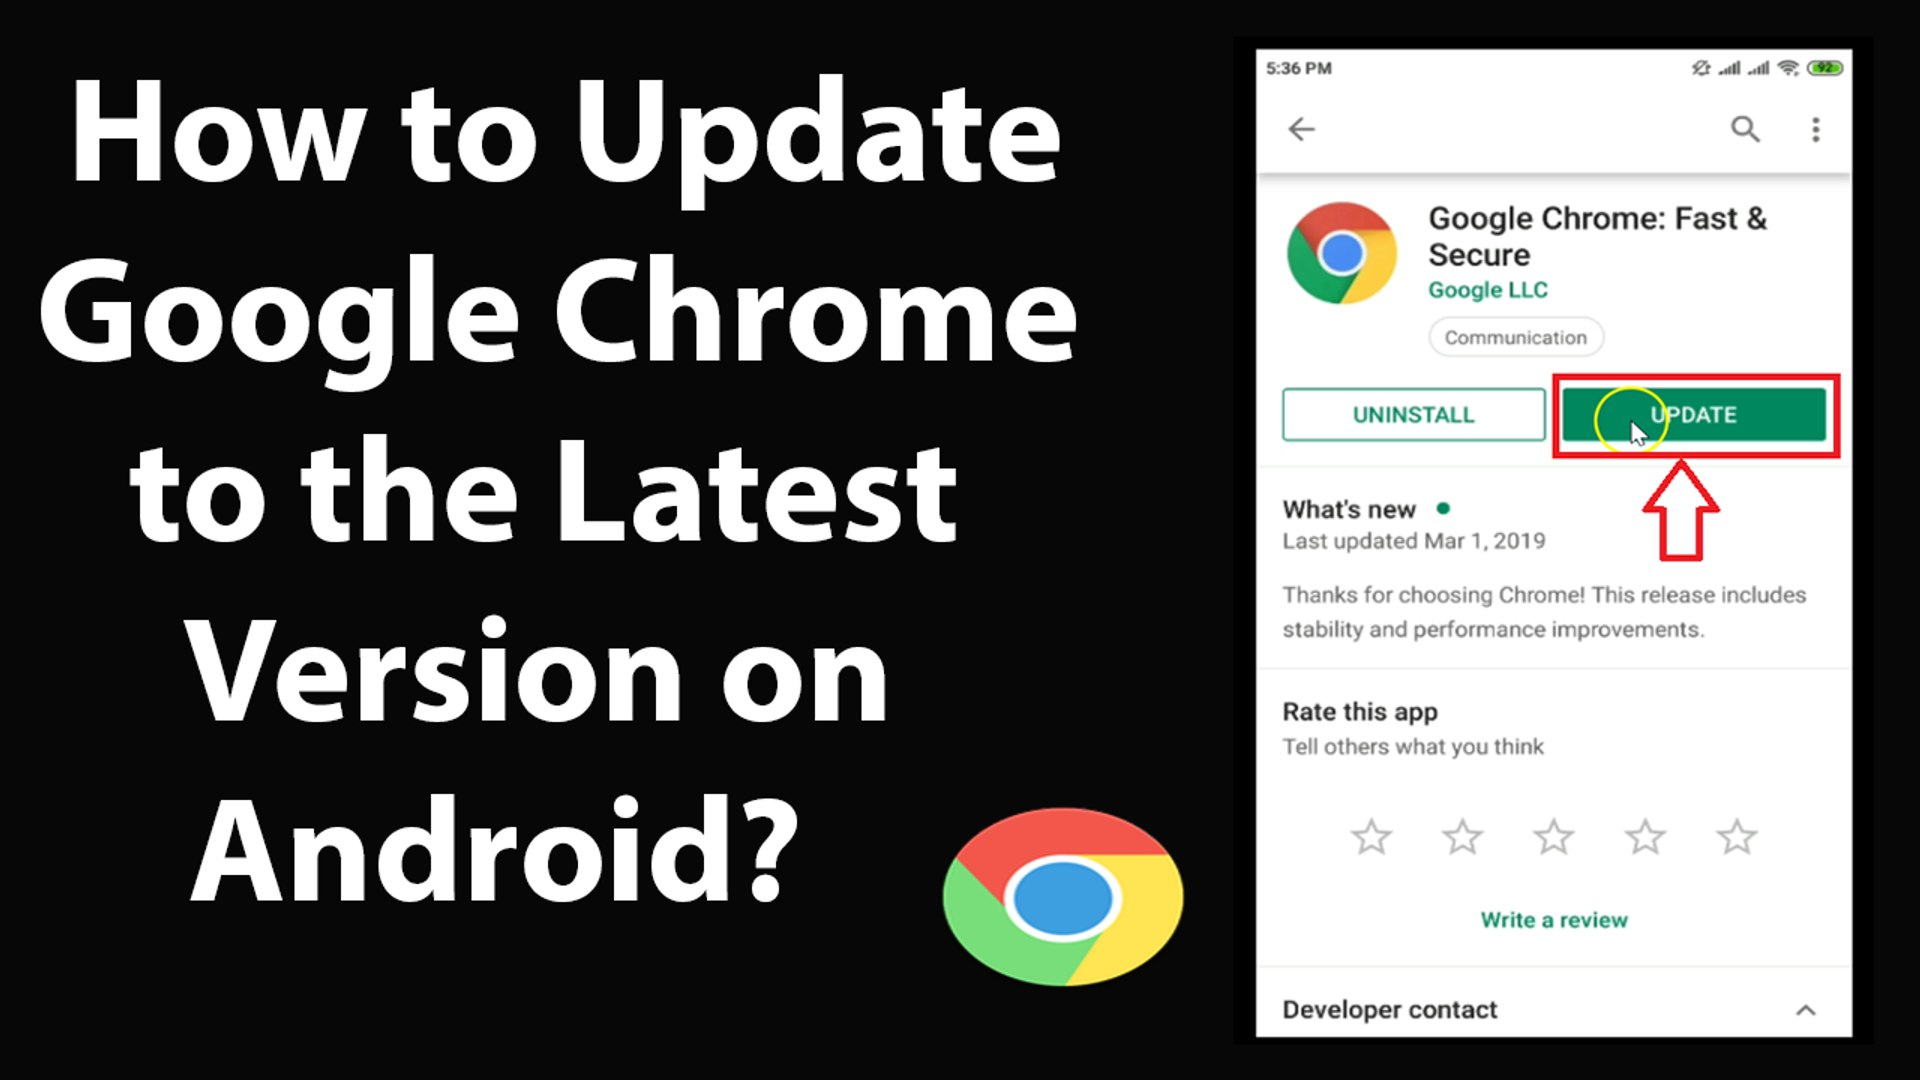 How to Update Google Chrome to the Latest Version on Android?